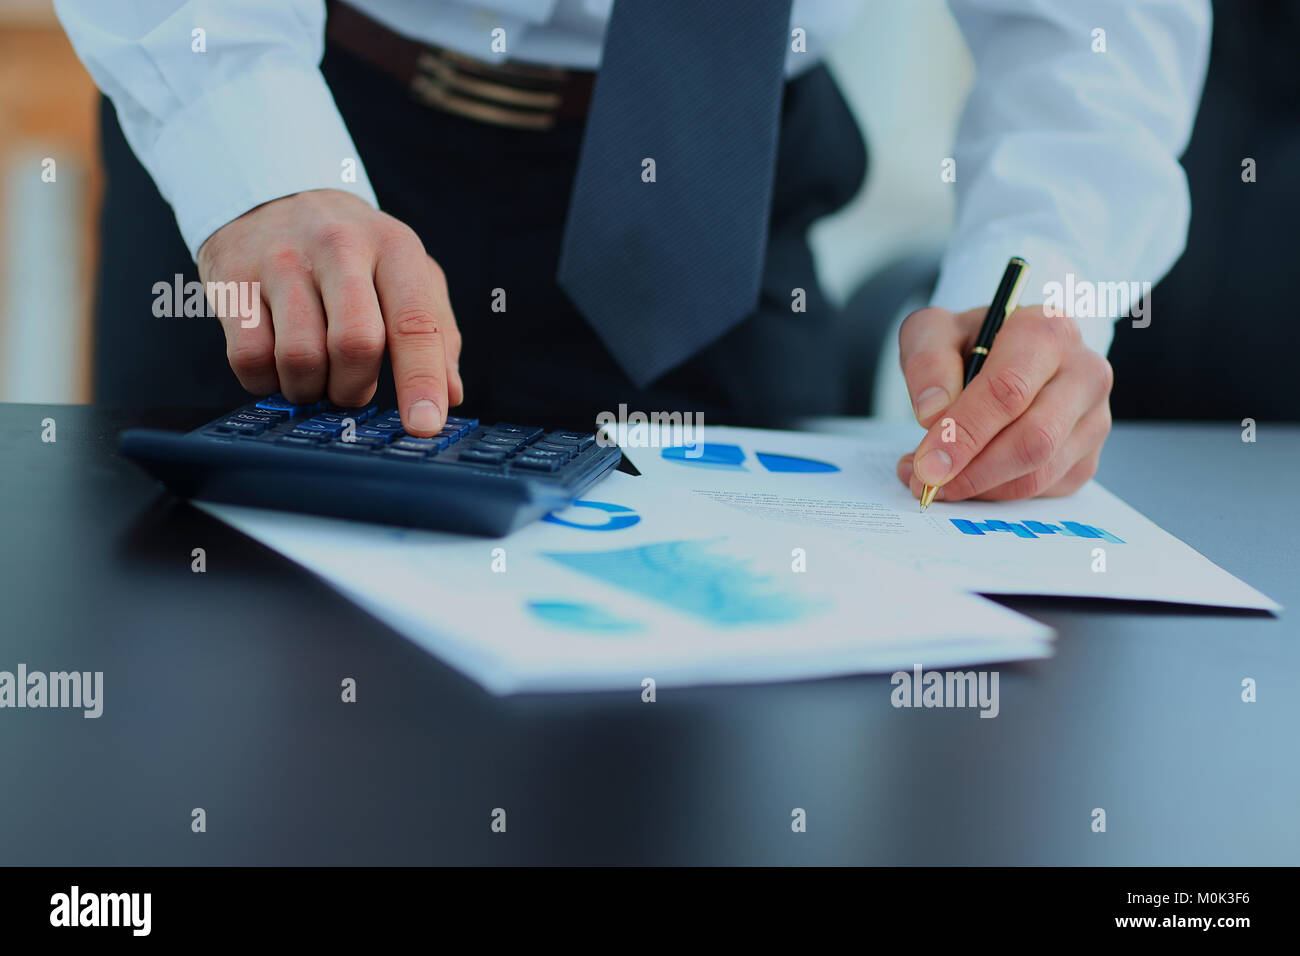 Businessman Using Calculator In Office. - Stock Image